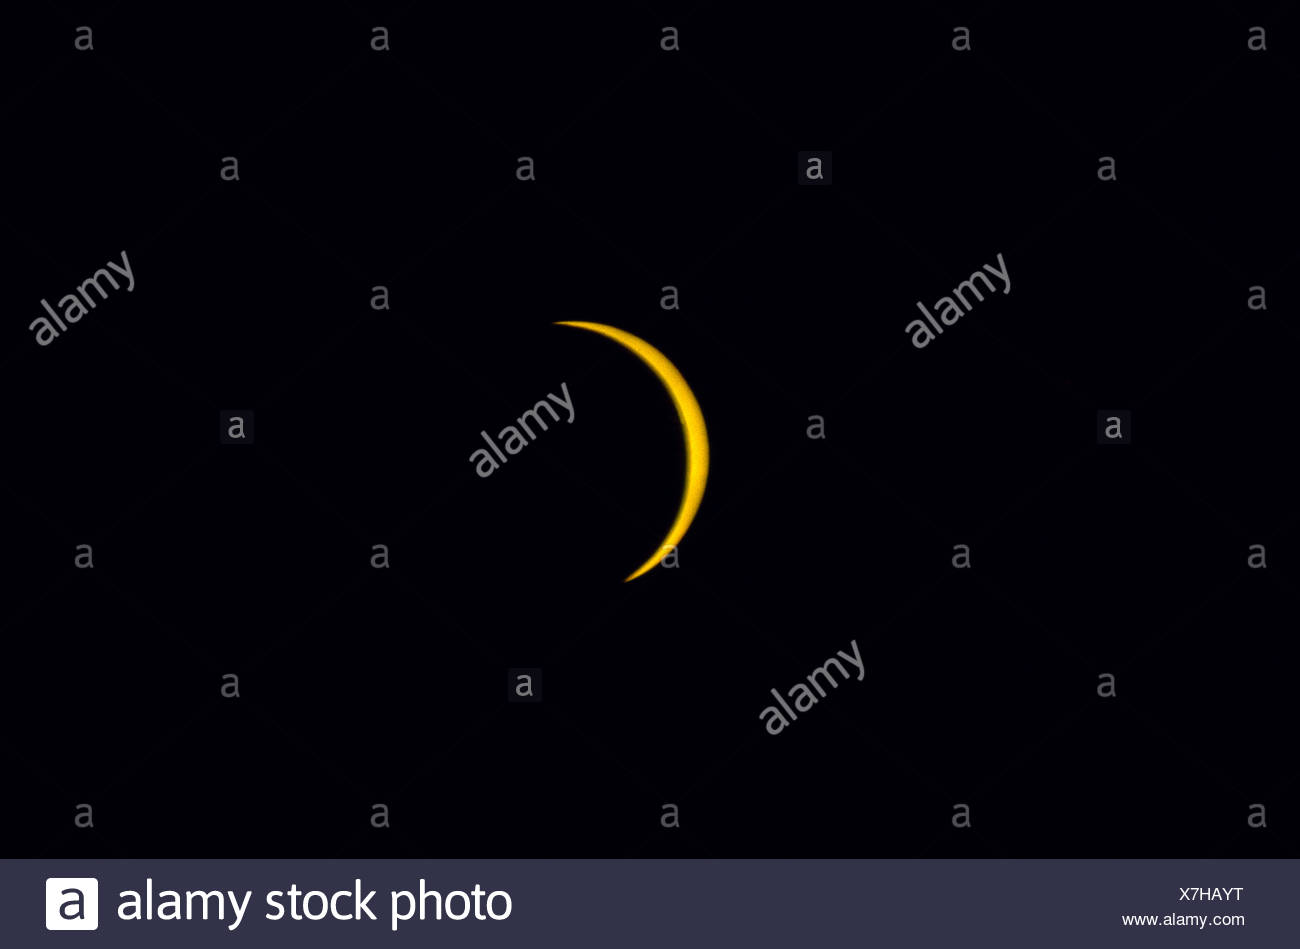 Eclipse of the sun seen from Le Havre France Sonnenfinsternis am 11 08 1999 gesehen von Le Havre Frankreich Querformat - Stock Image